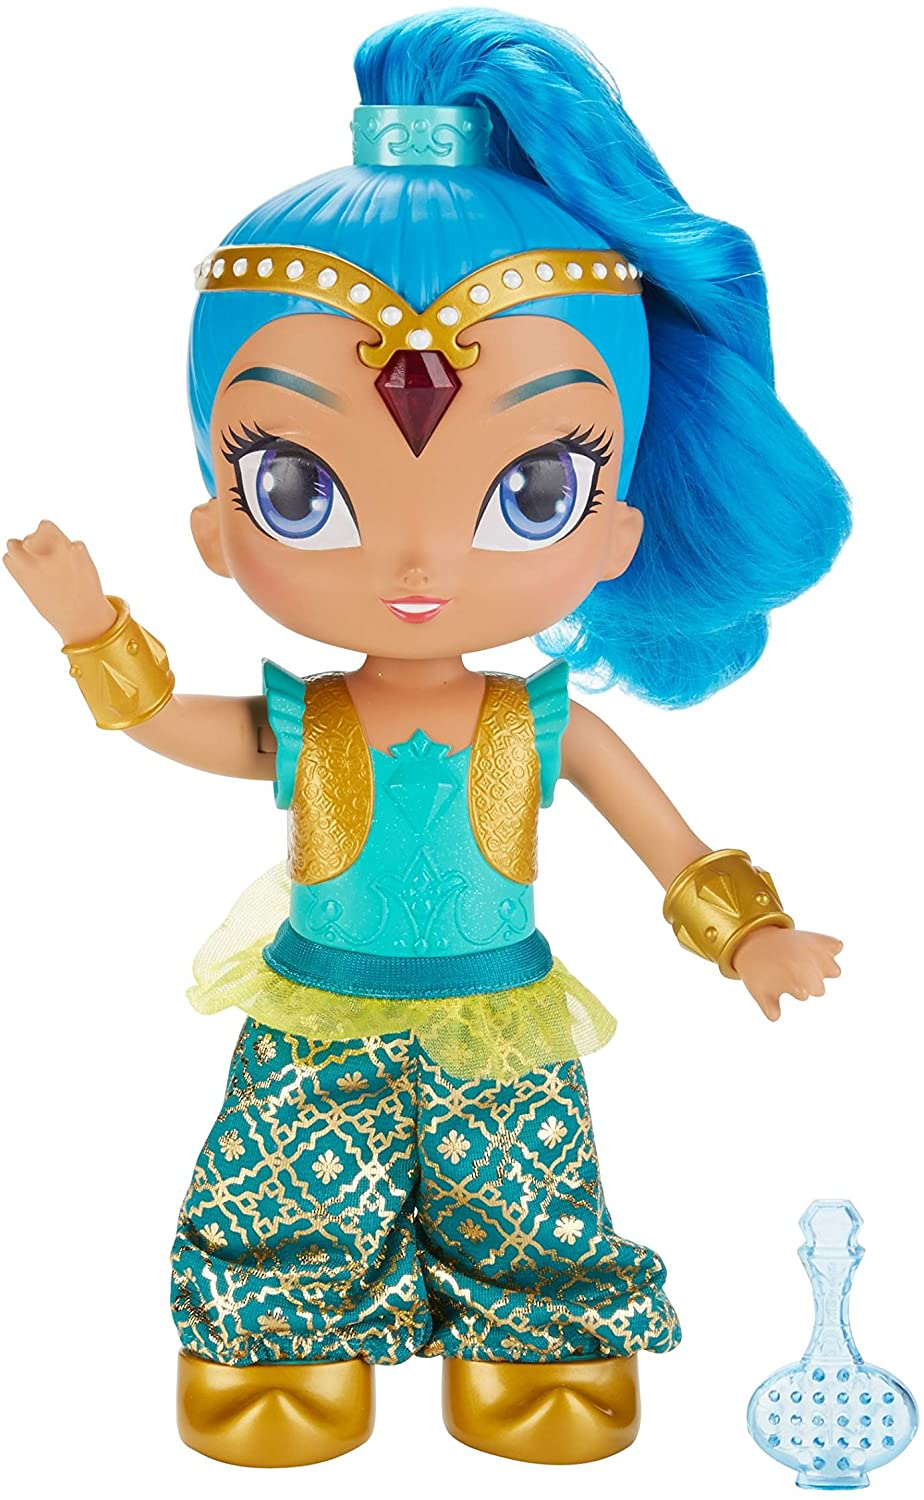 Shimmer and Shine DYV78(DYV85) Genie Dance Shimmer Doll